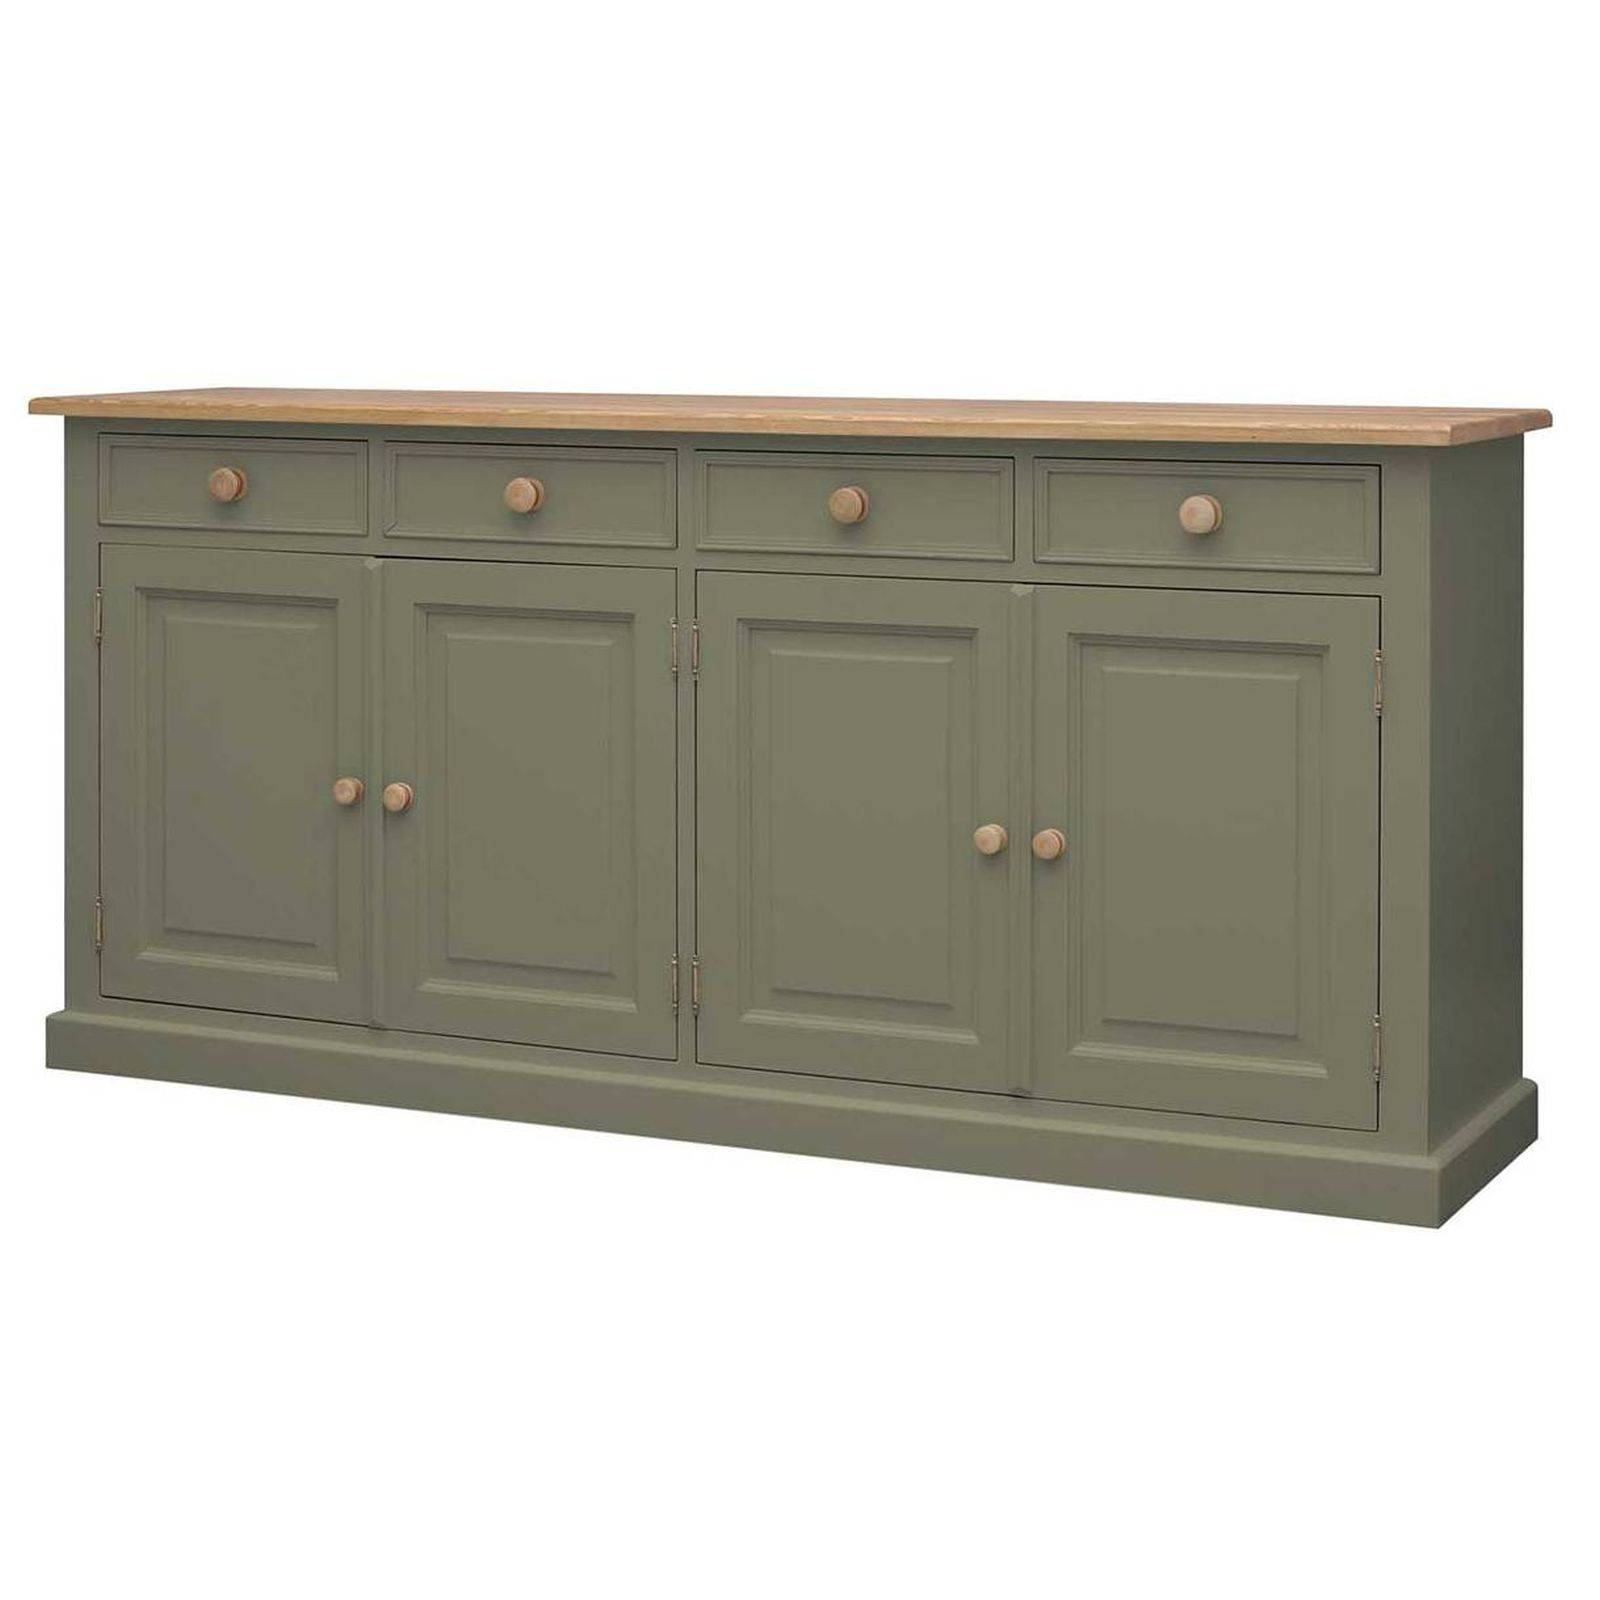 Harrogate Green Painted Pine Furniture Extra Large Sideboard Pertaining To Pine Sideboards (View 6 of 15)